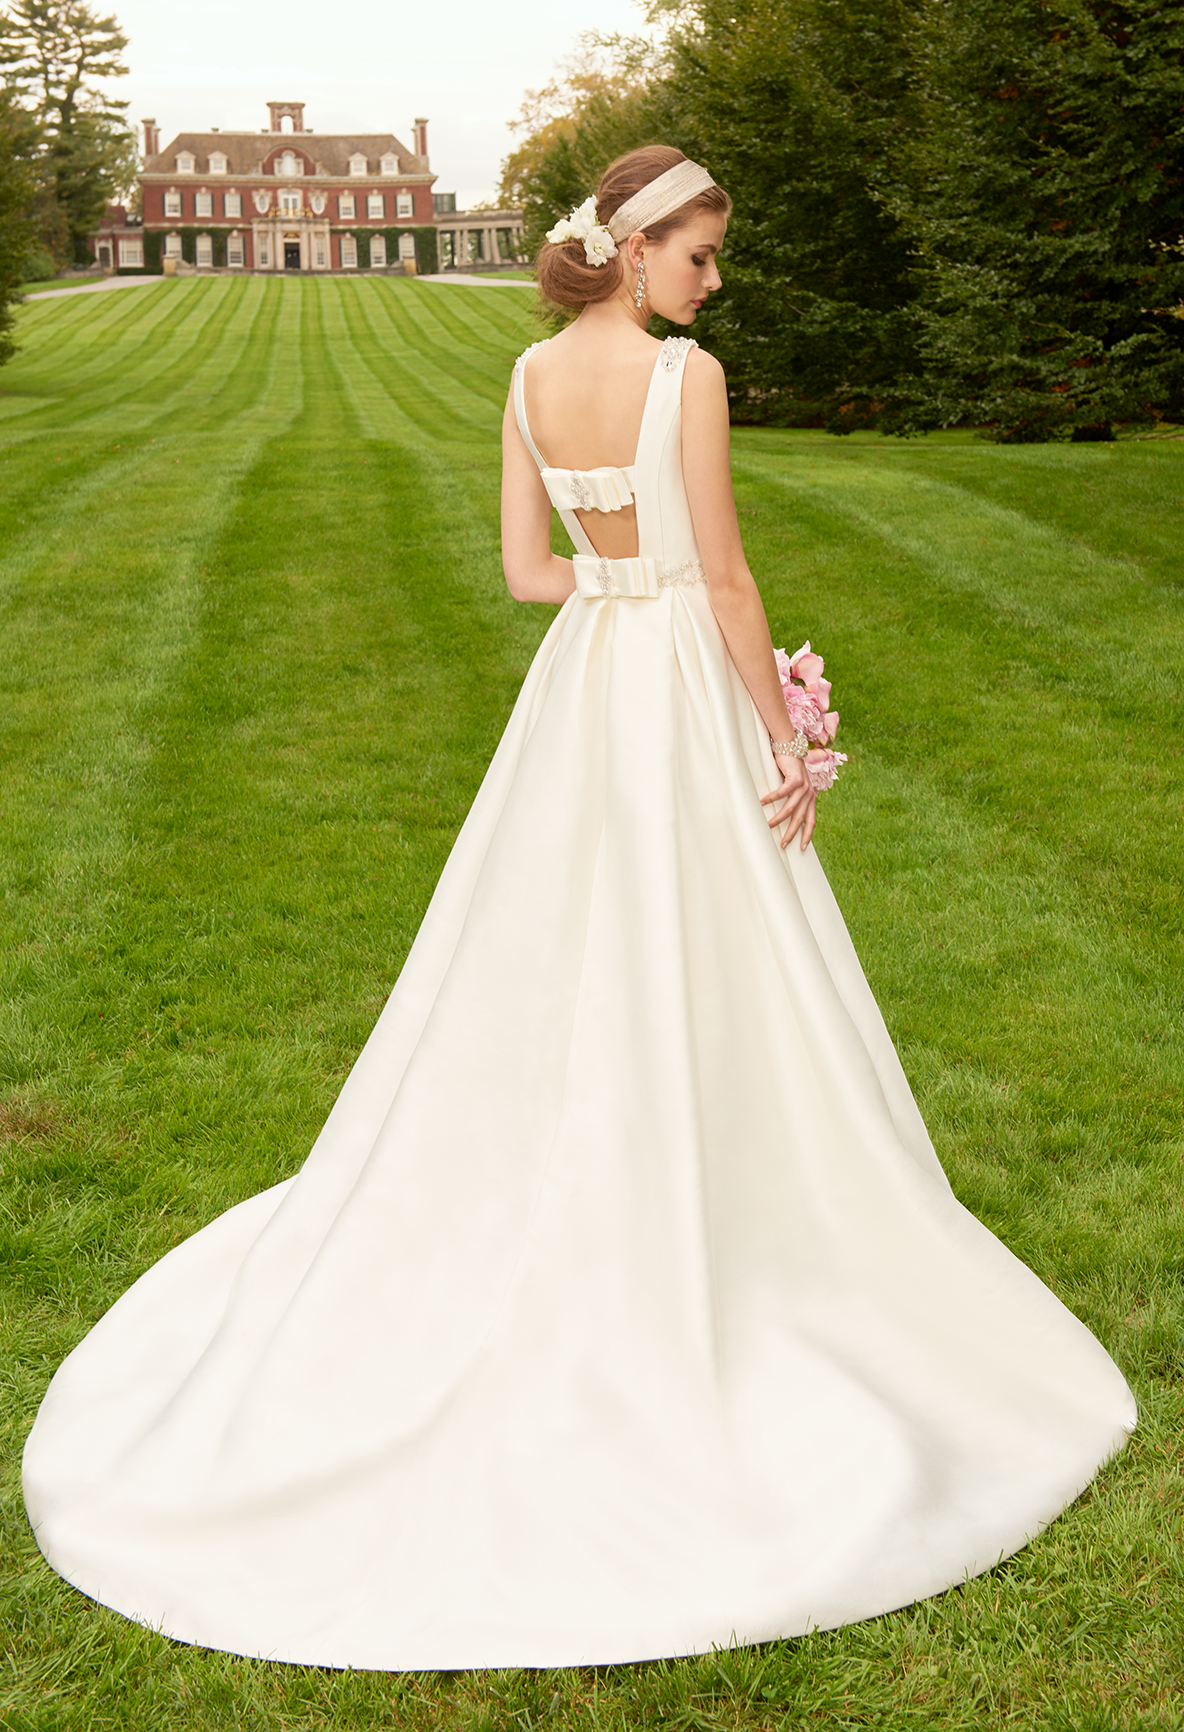 Look and feel like a princess on the big day in this magnificent